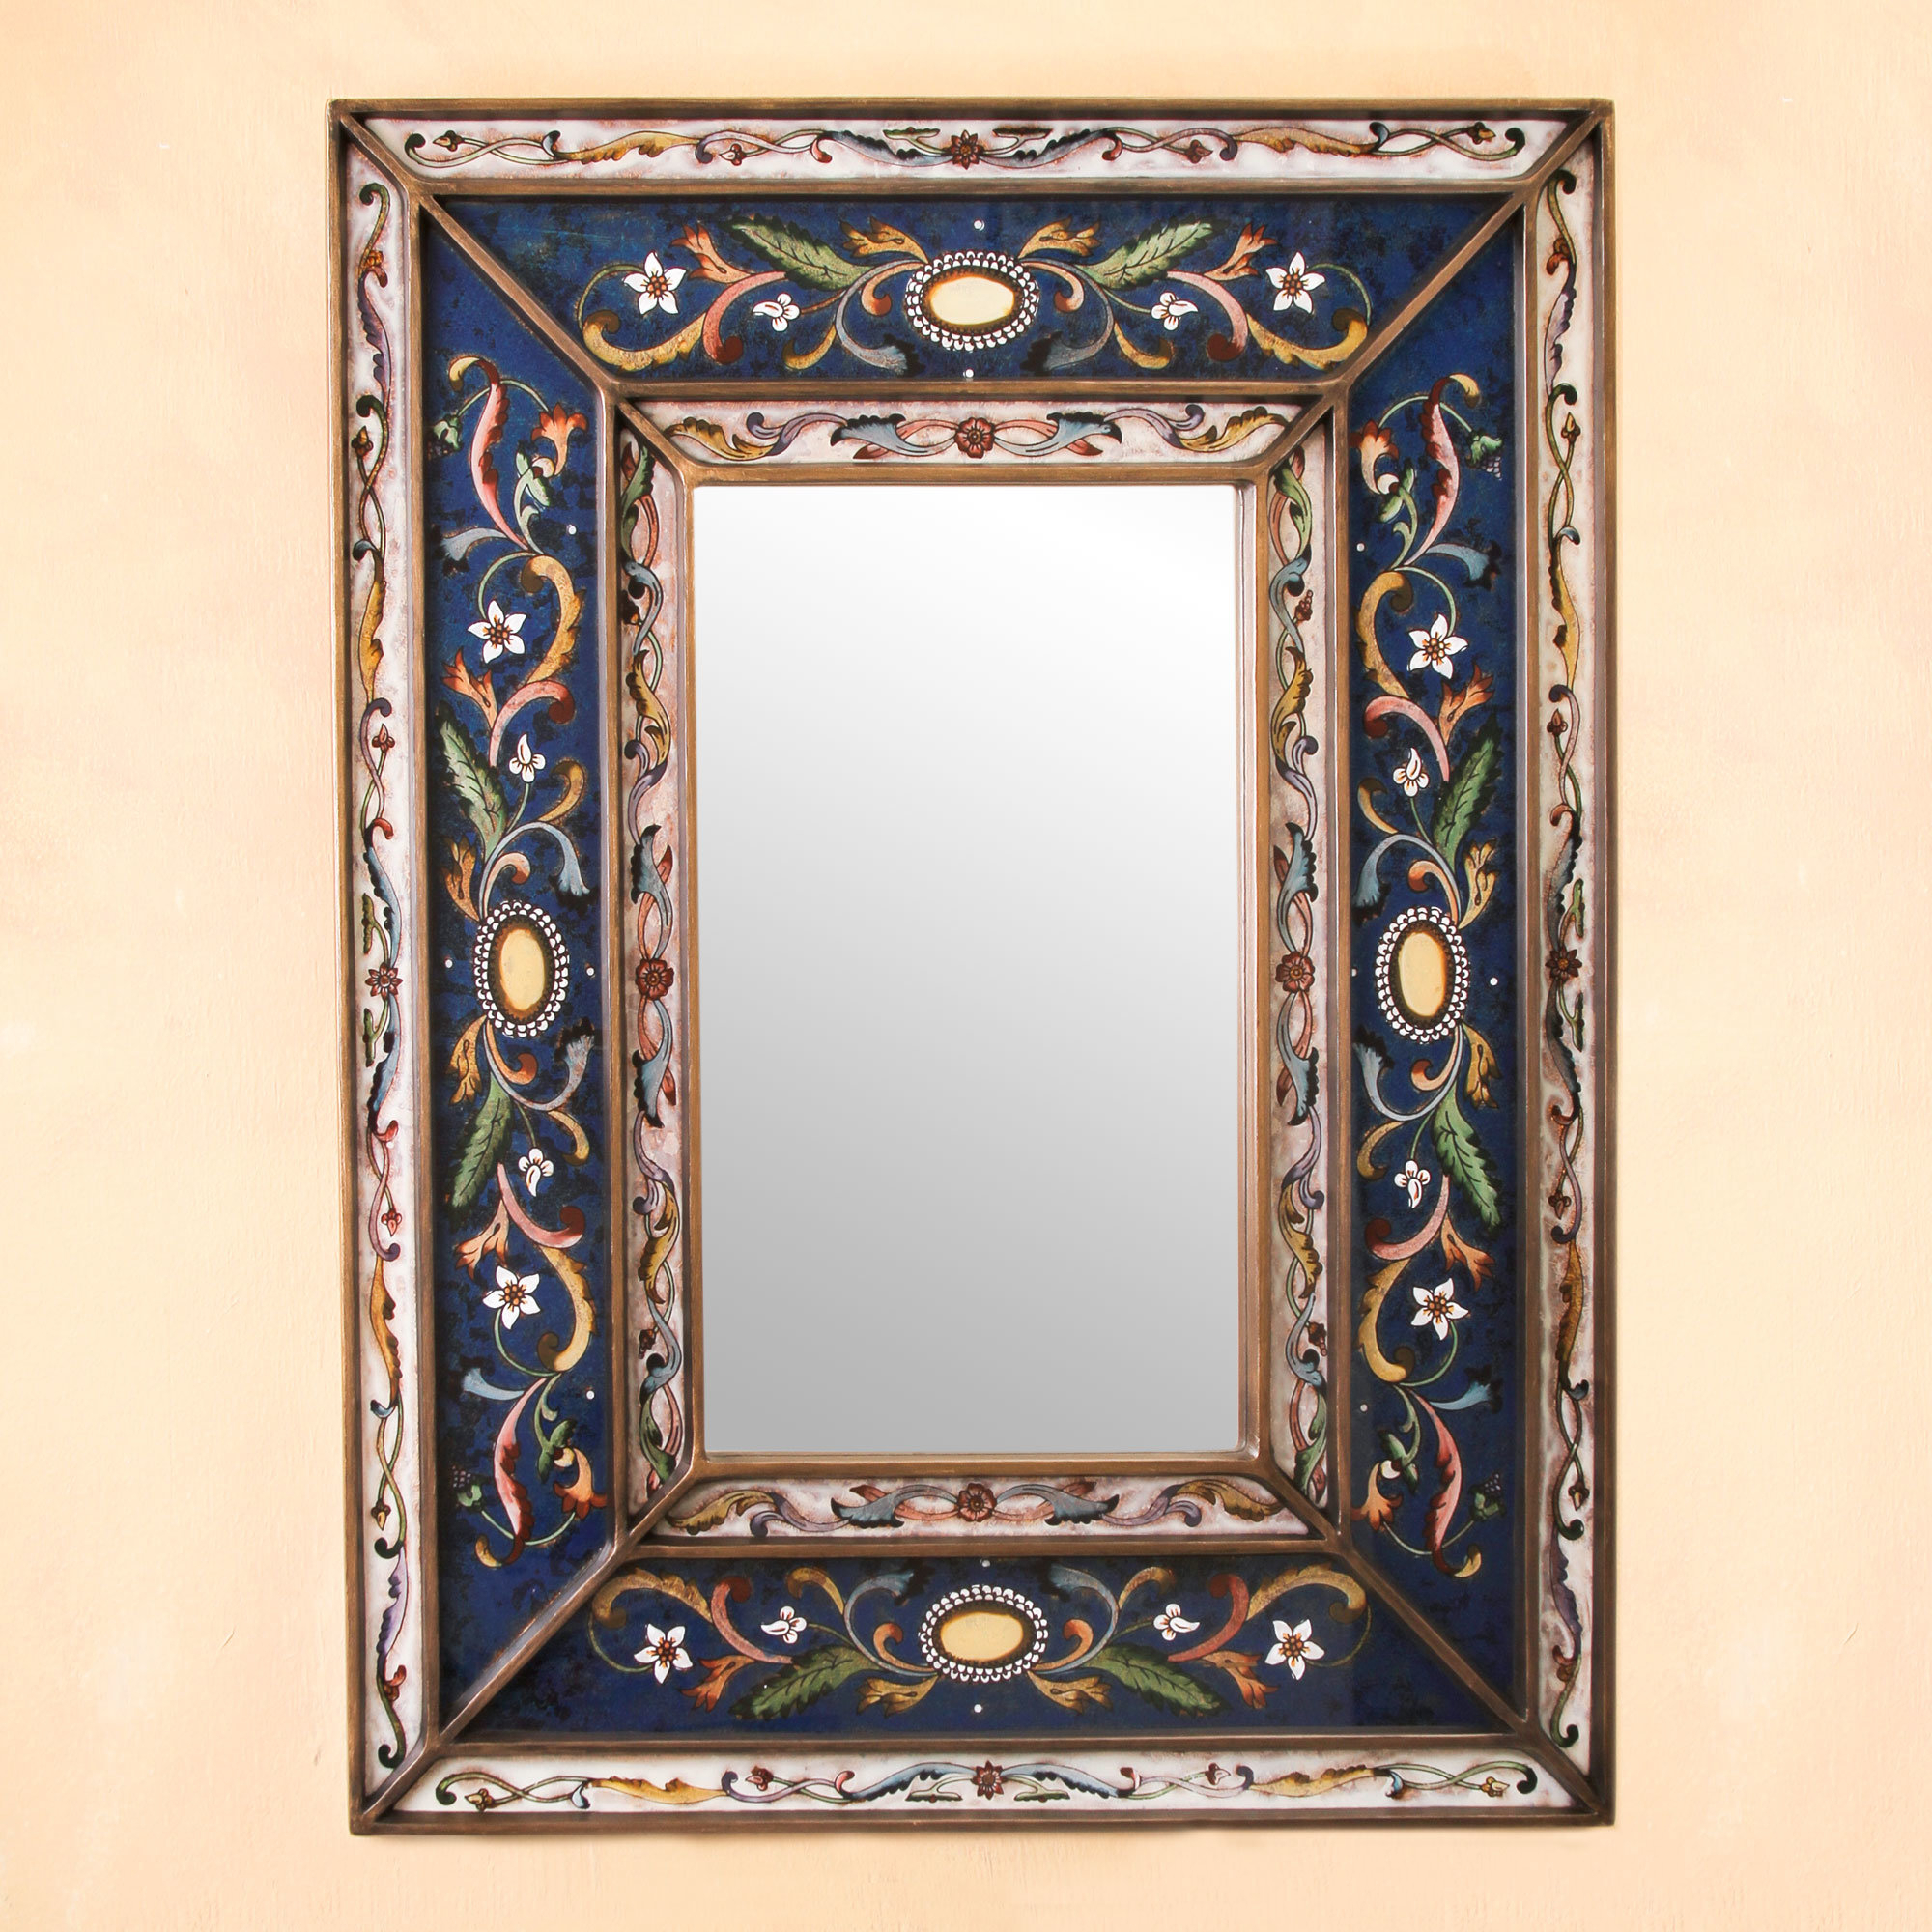 Fair Trade Floral Themed Hand Painted South American Hanging Rectangle Wall Mirror Throughout Well Known Hand Painted Wall Mirrors (View 14 of 20)